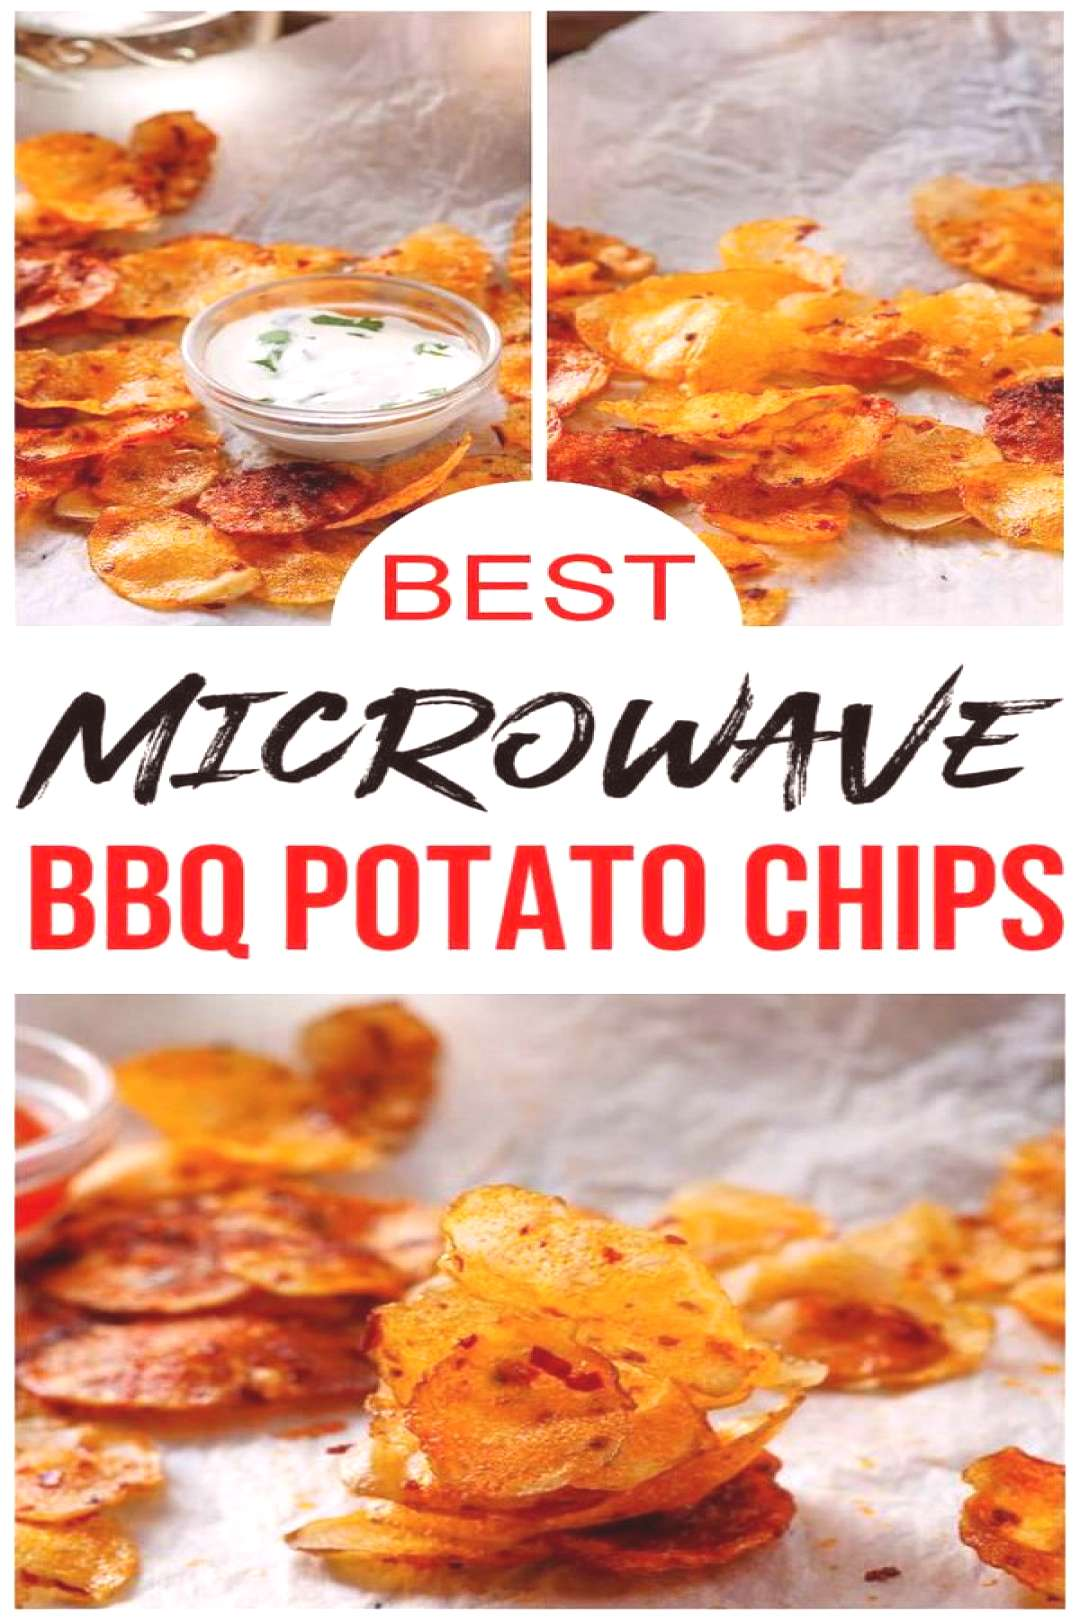 Microwave BBQ Potato Chips! Easy amp simple microwave recipe everyone loves. Learn how to make Microw